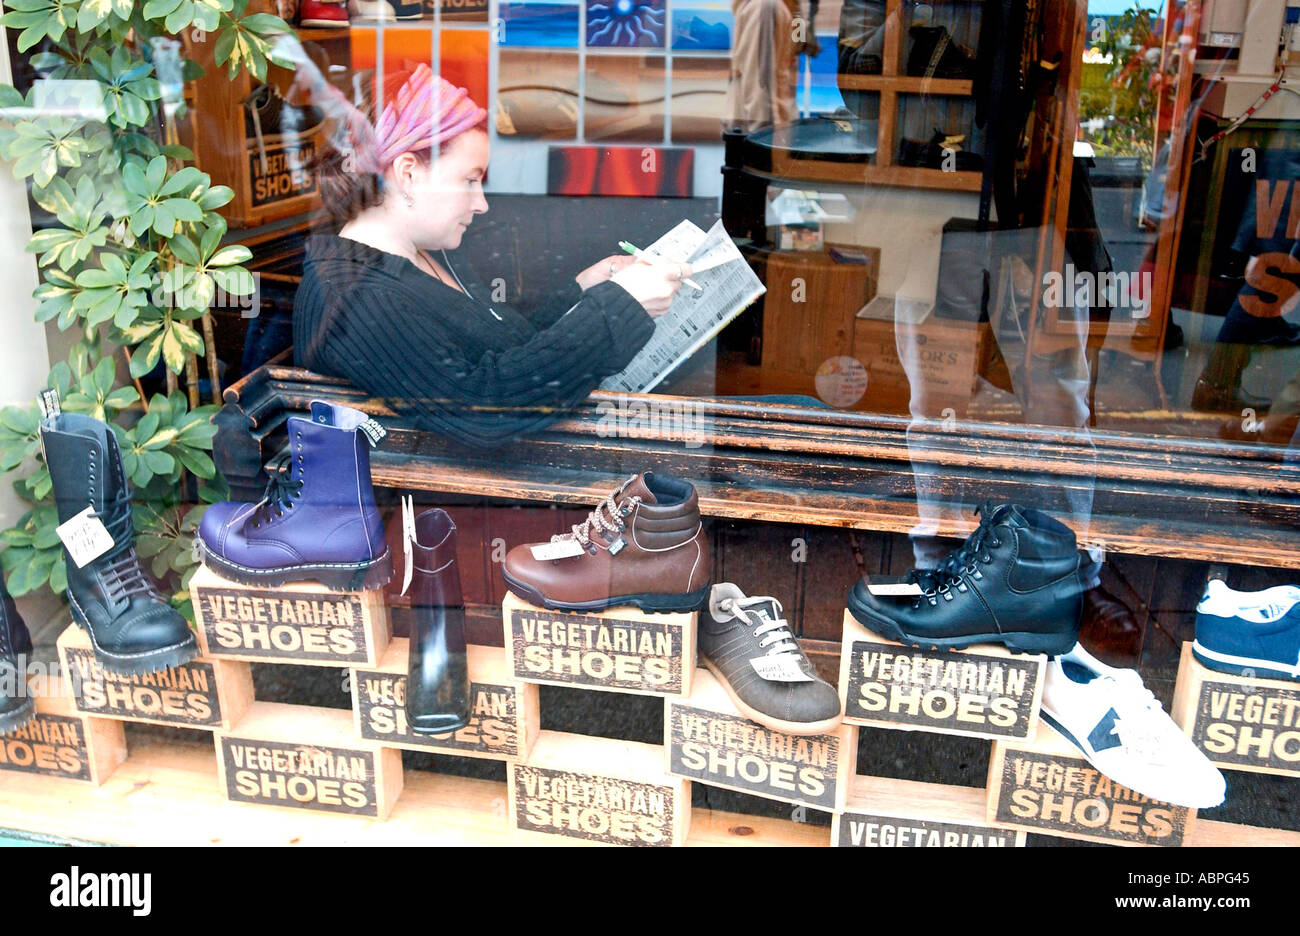 f774df8eab4310 Animal friendly shoe shop Vegetarian Shoes in Brighton where leather is  banned - Stock Image